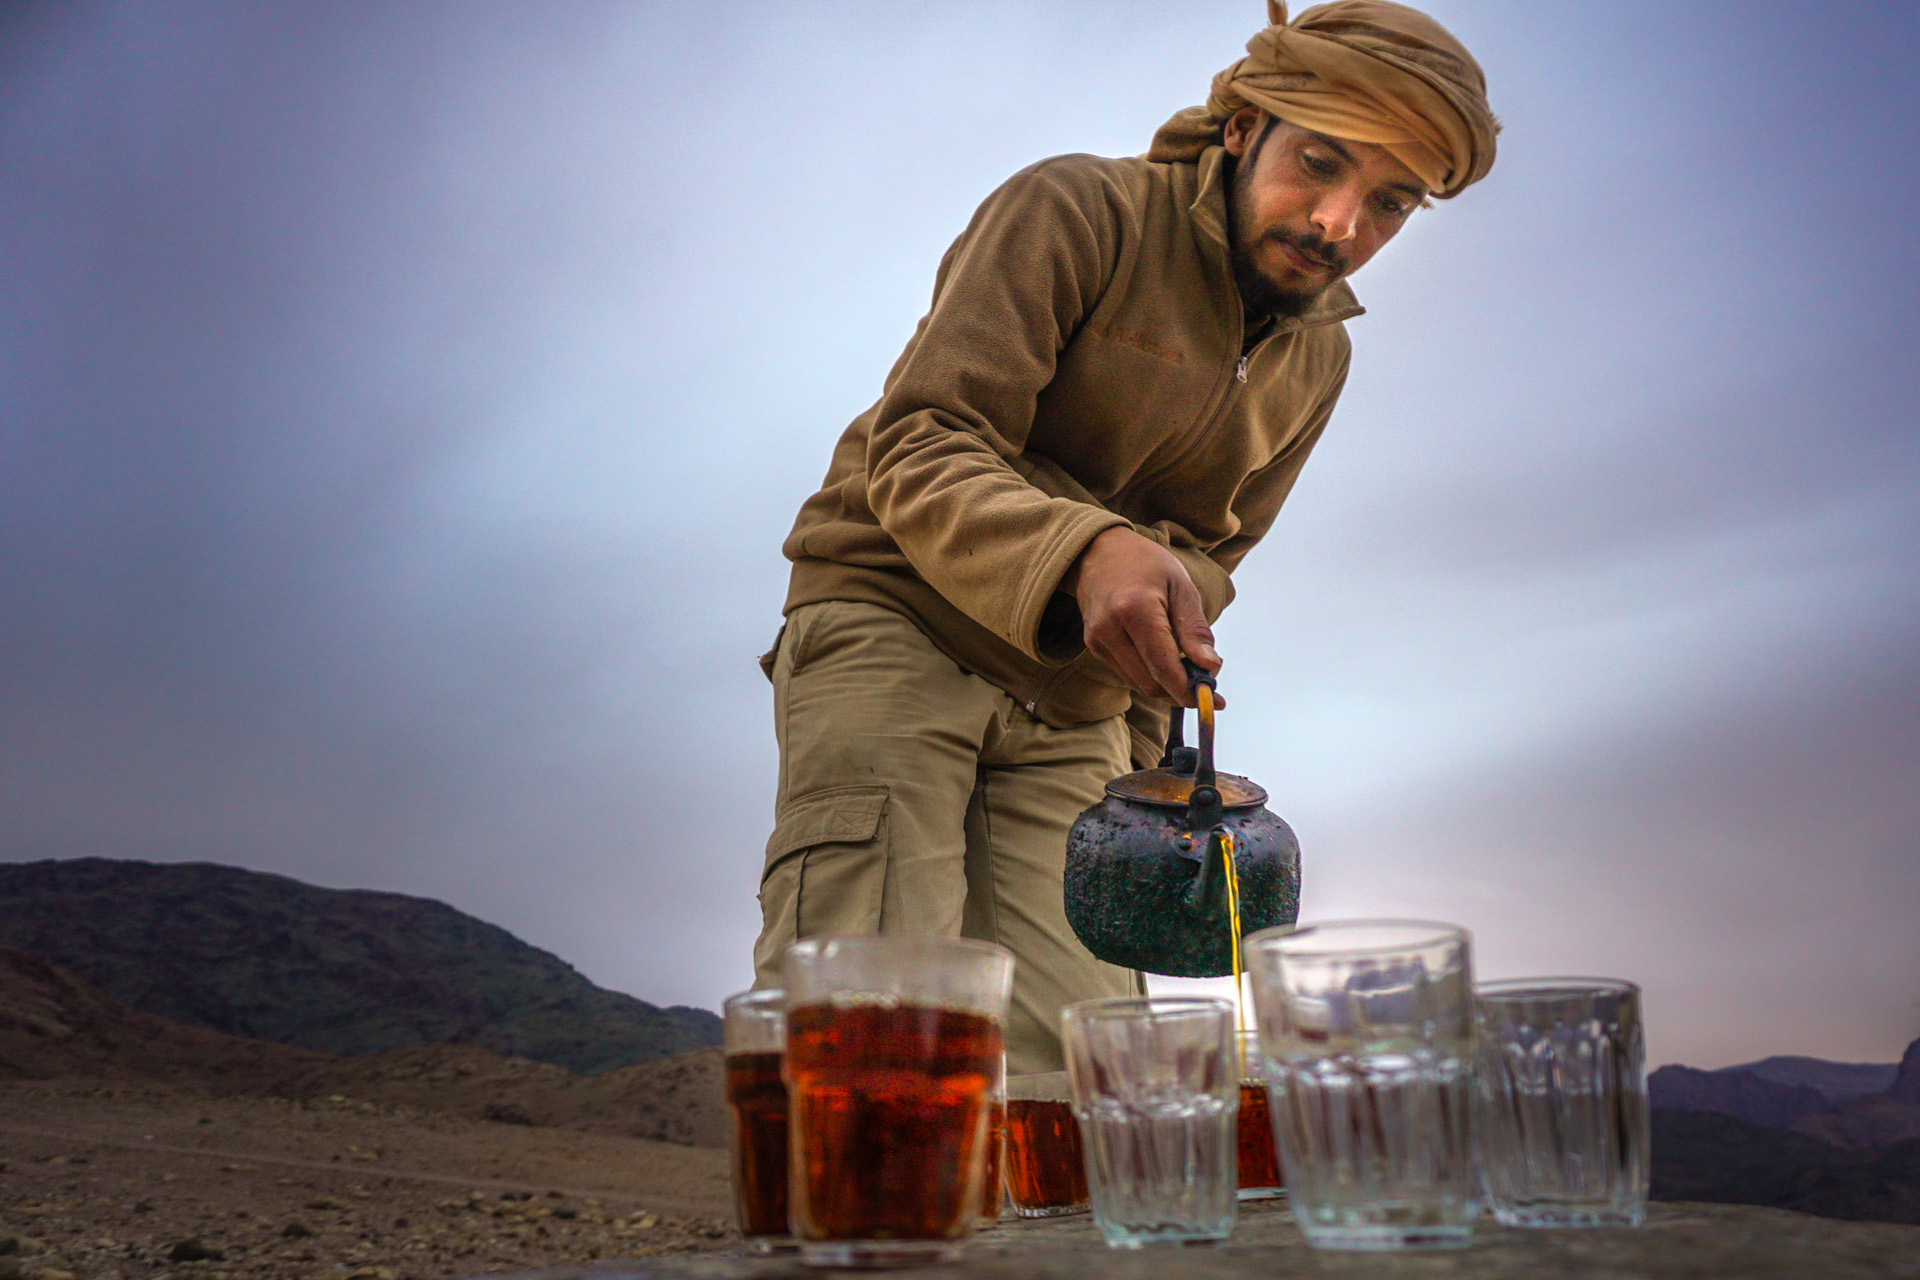 Jordanians are known for their hospitality and often greet travelers with tea